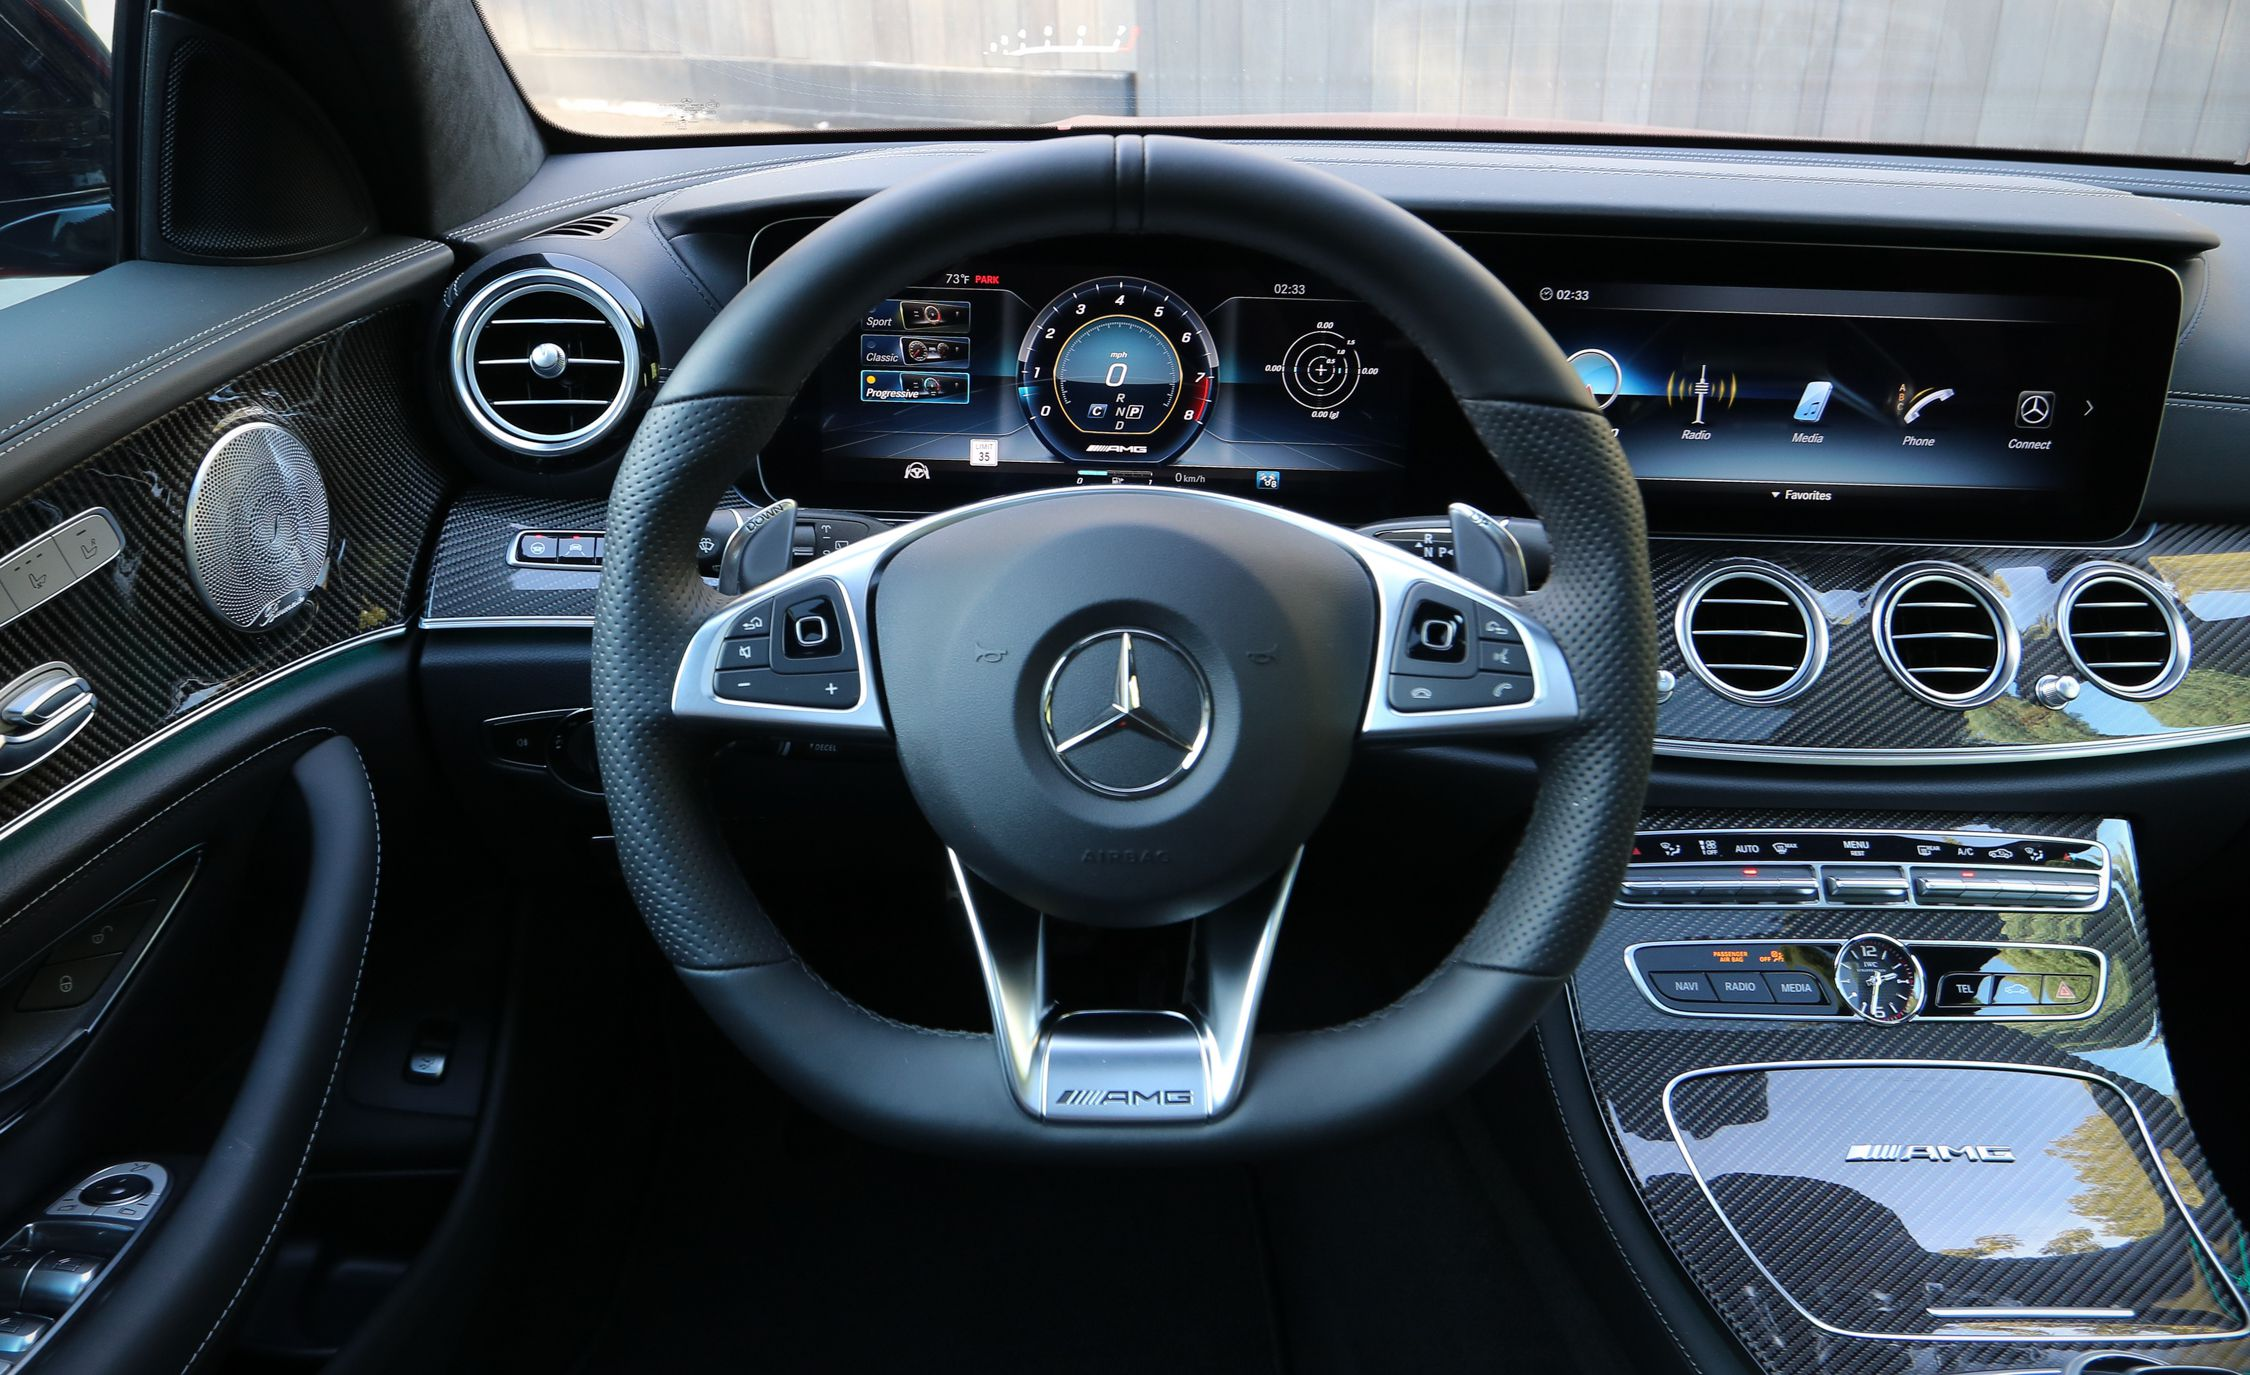 2018 Mercedes Amg E63 S Wagon Interior Pit Wallpaper